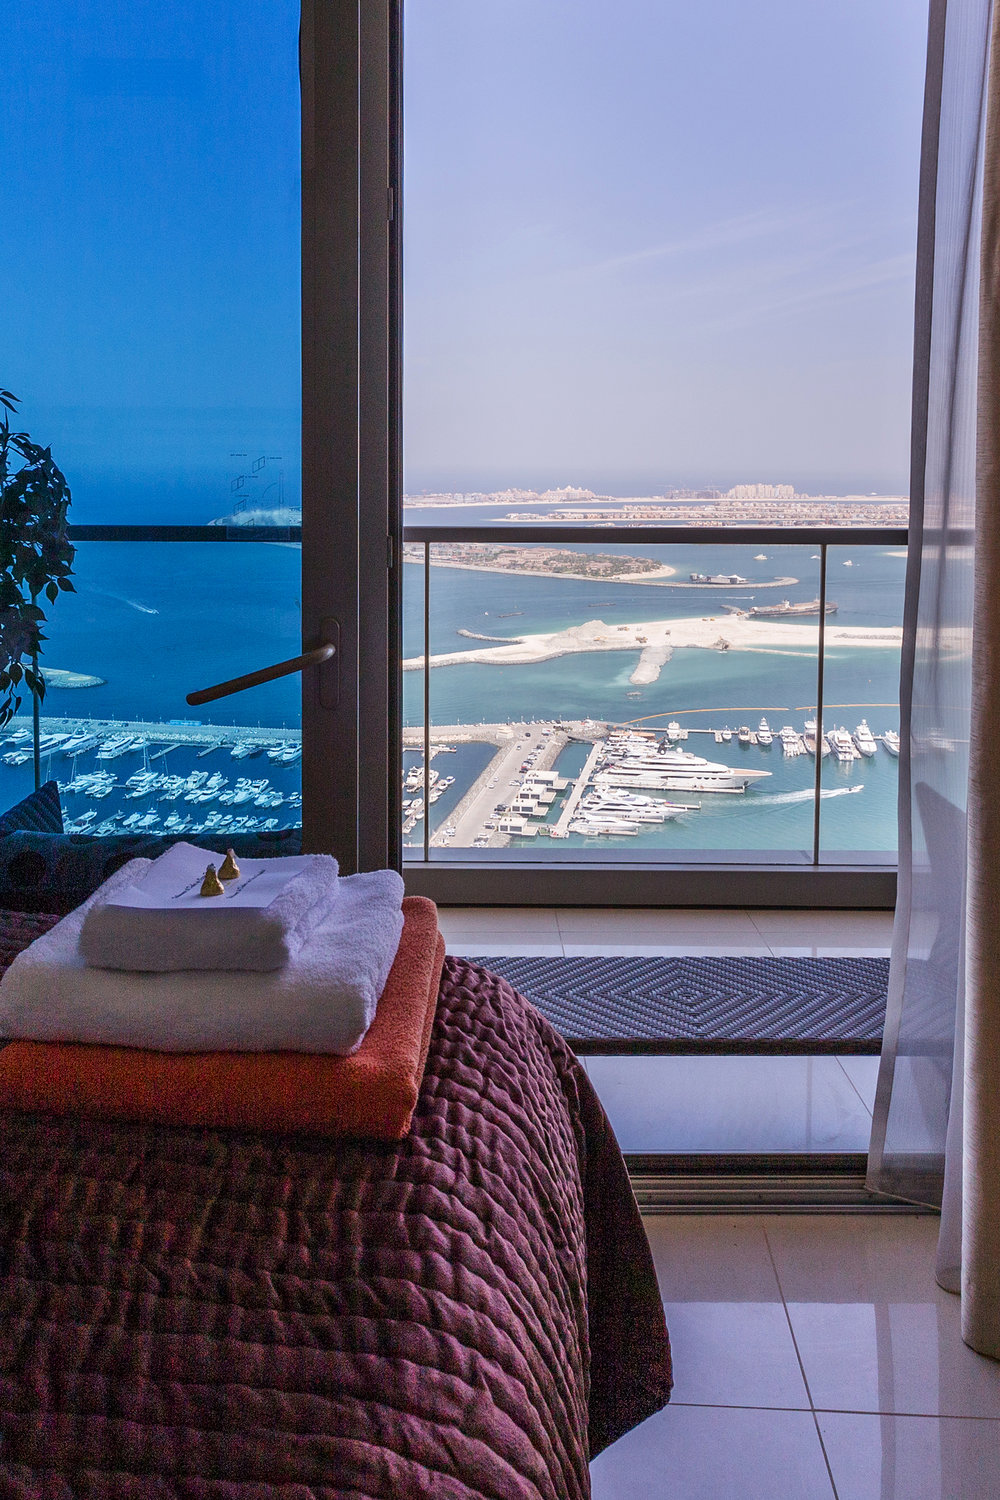 Each bedroom offers stunning views of the Palm Jumeirah and JBR Beach